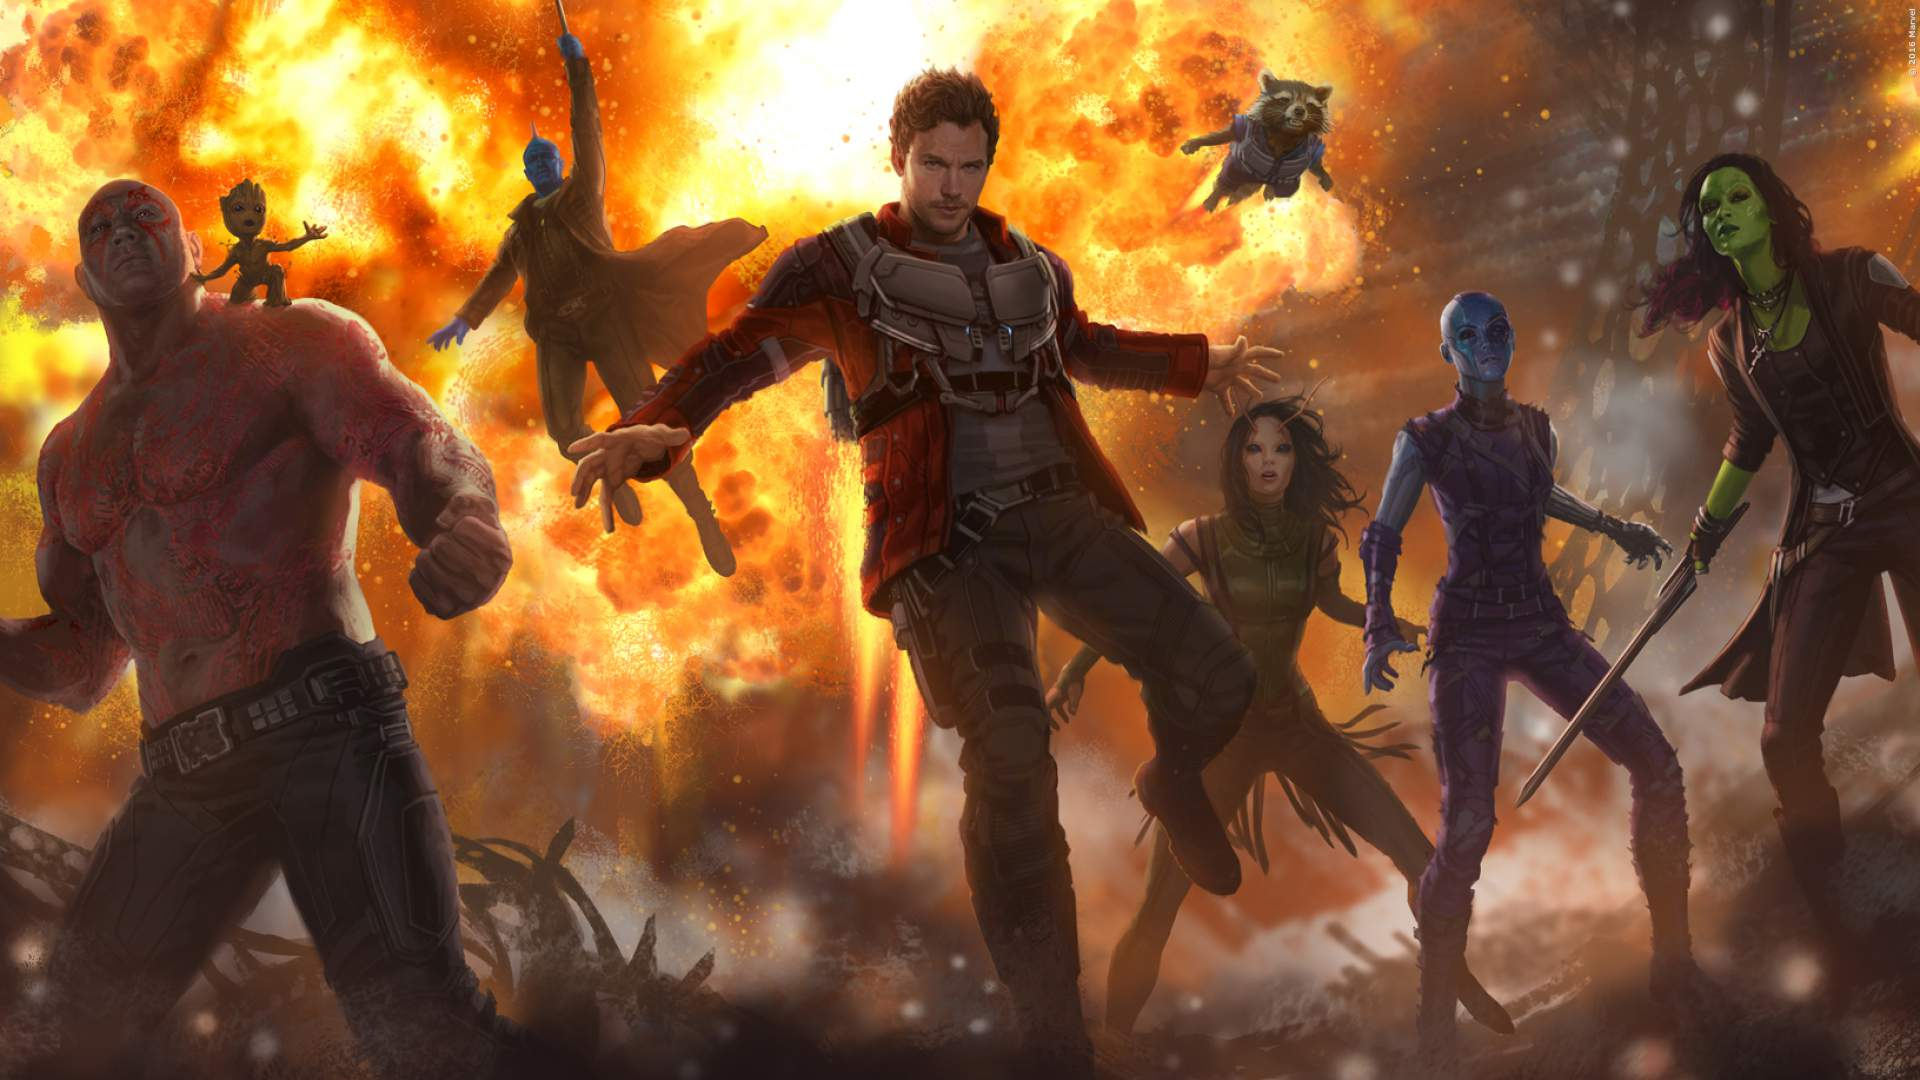 Guardians Of The Galaxy 2 Trailer - Bild 1 von 2